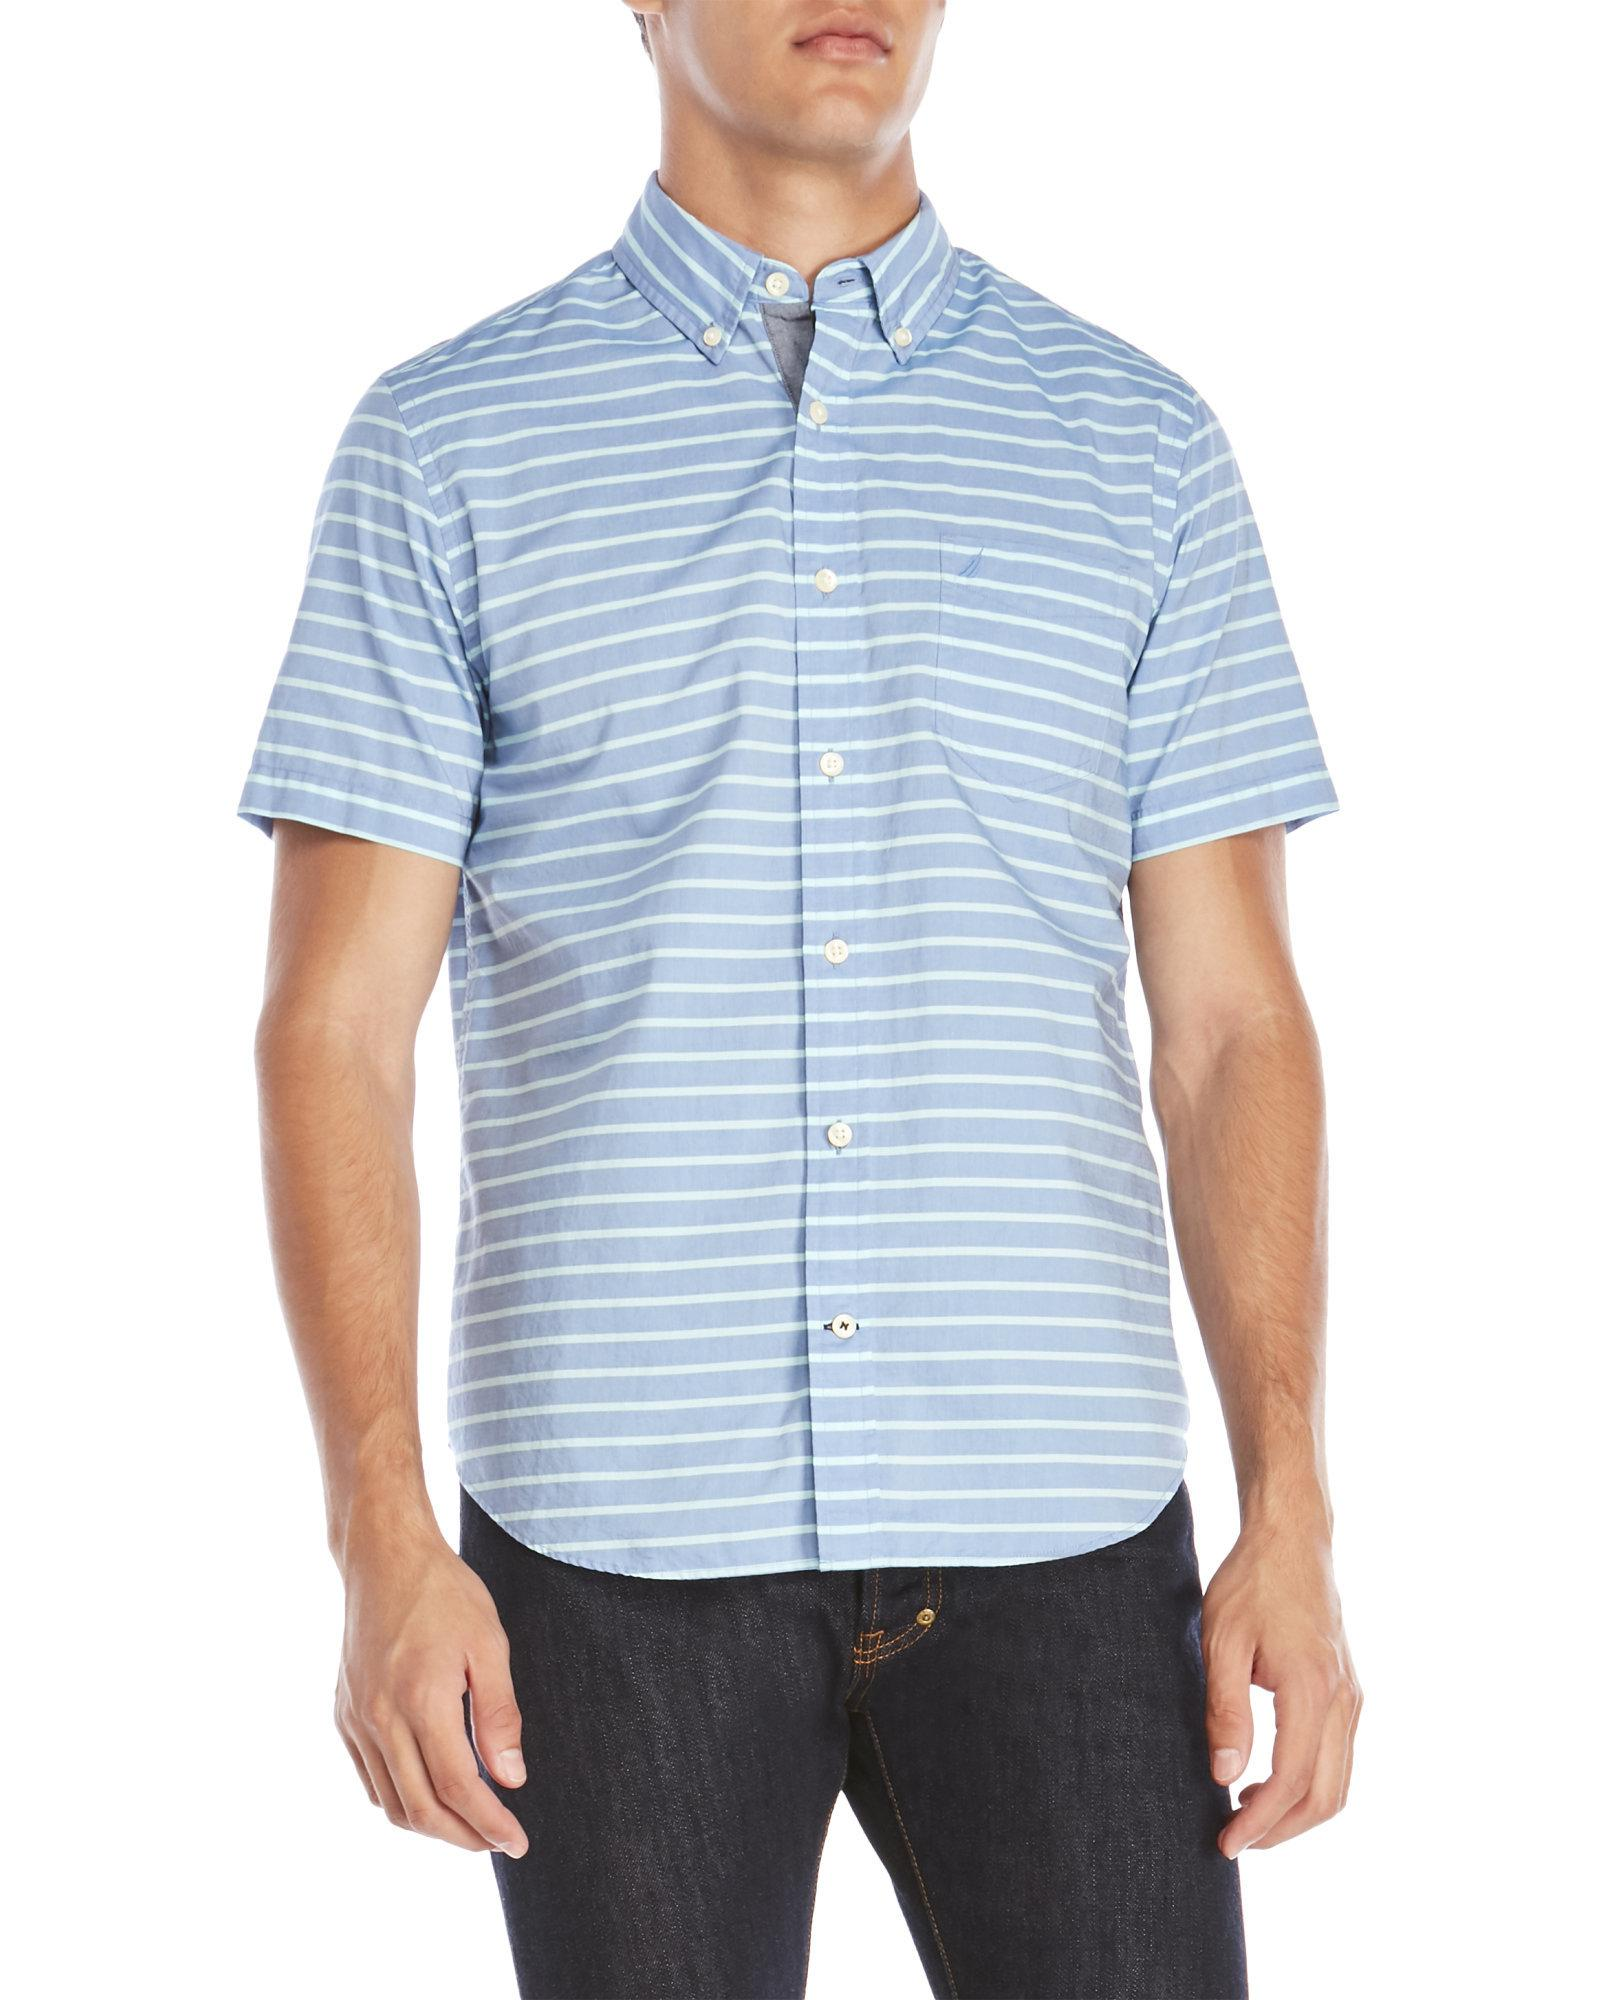 Best Supplier Cheap Sale Release Dates Nautica Nautica Classic Fit Riviera Horizontal Stripe Short Sleeve Shirt Sale Official Clearance Marketable Outlet Wiki FjZIEK